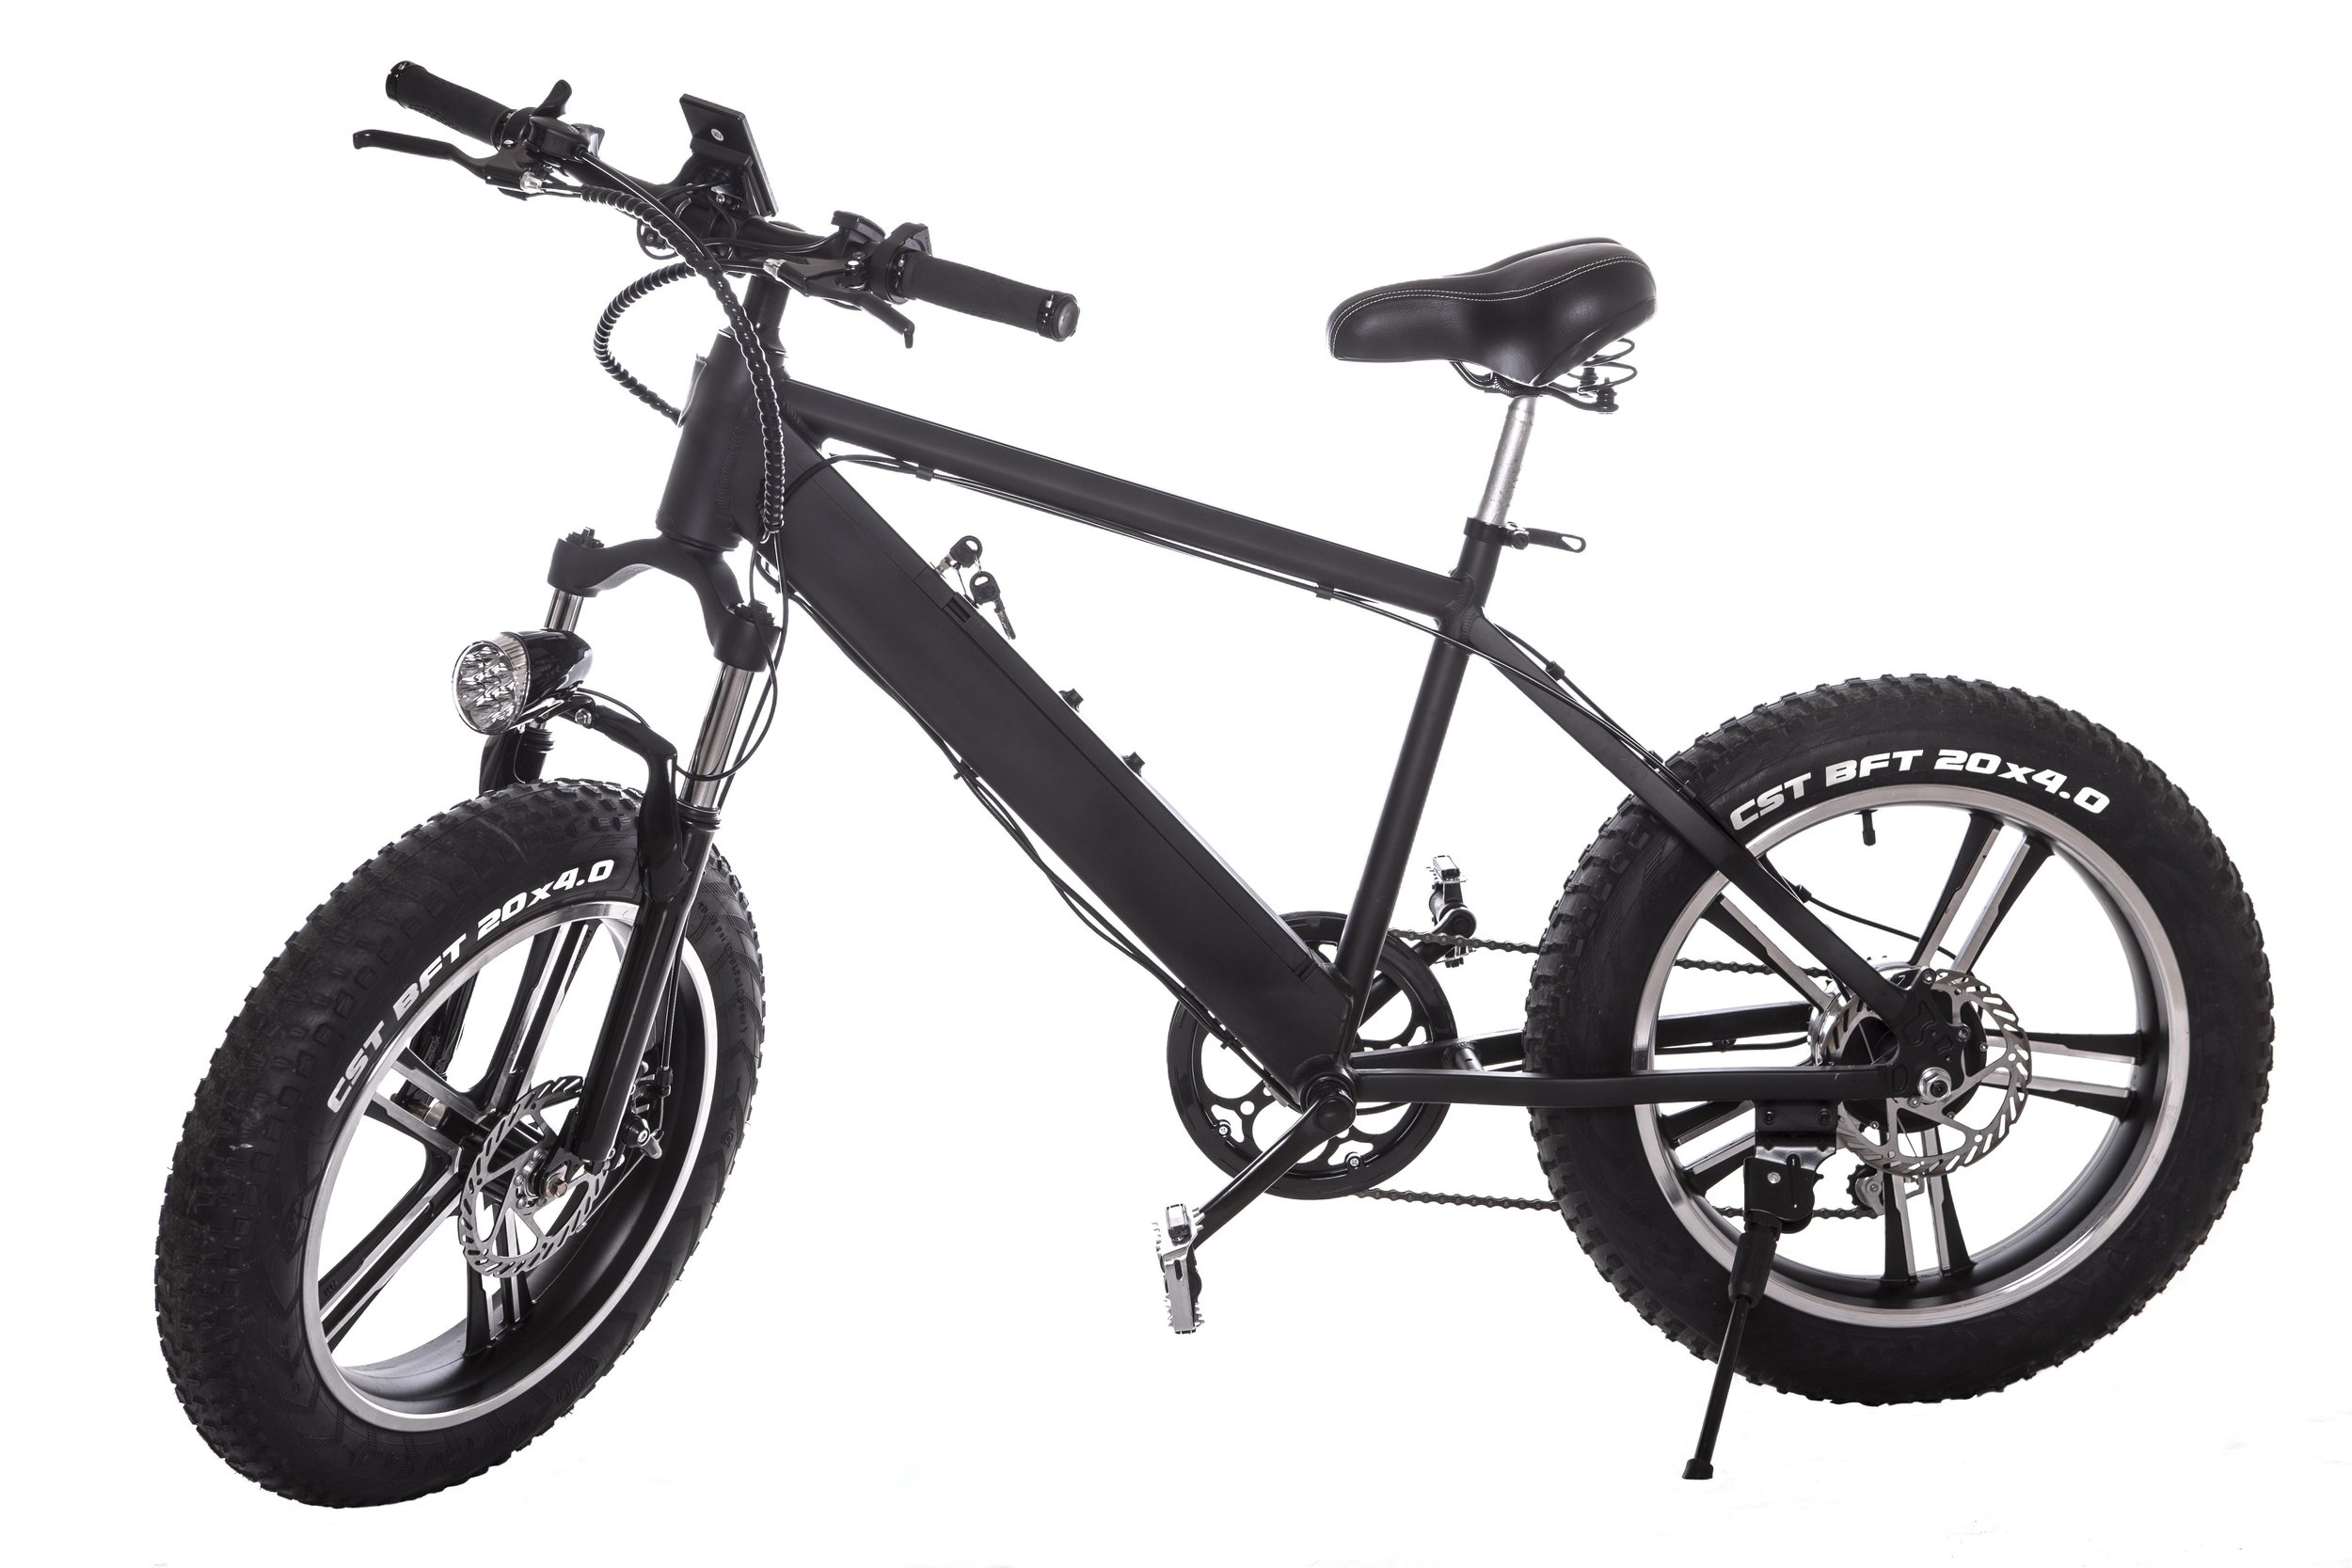 20″ Fat Tire ePower Bike Black $1299   Motor: 300W brushless motor  Battery: 36V10AH Lithium Ion Battery Charging Time: 3-4hours Max Speed: 25-28 MPH Range: 30-40 MILES  Components: Shimano  Brake: Dual Disc Brakes  G.W.(LBS):70 N.W.(LBS):60 Weight capacity: 275 Lbs Tire:20″ Fat Tire